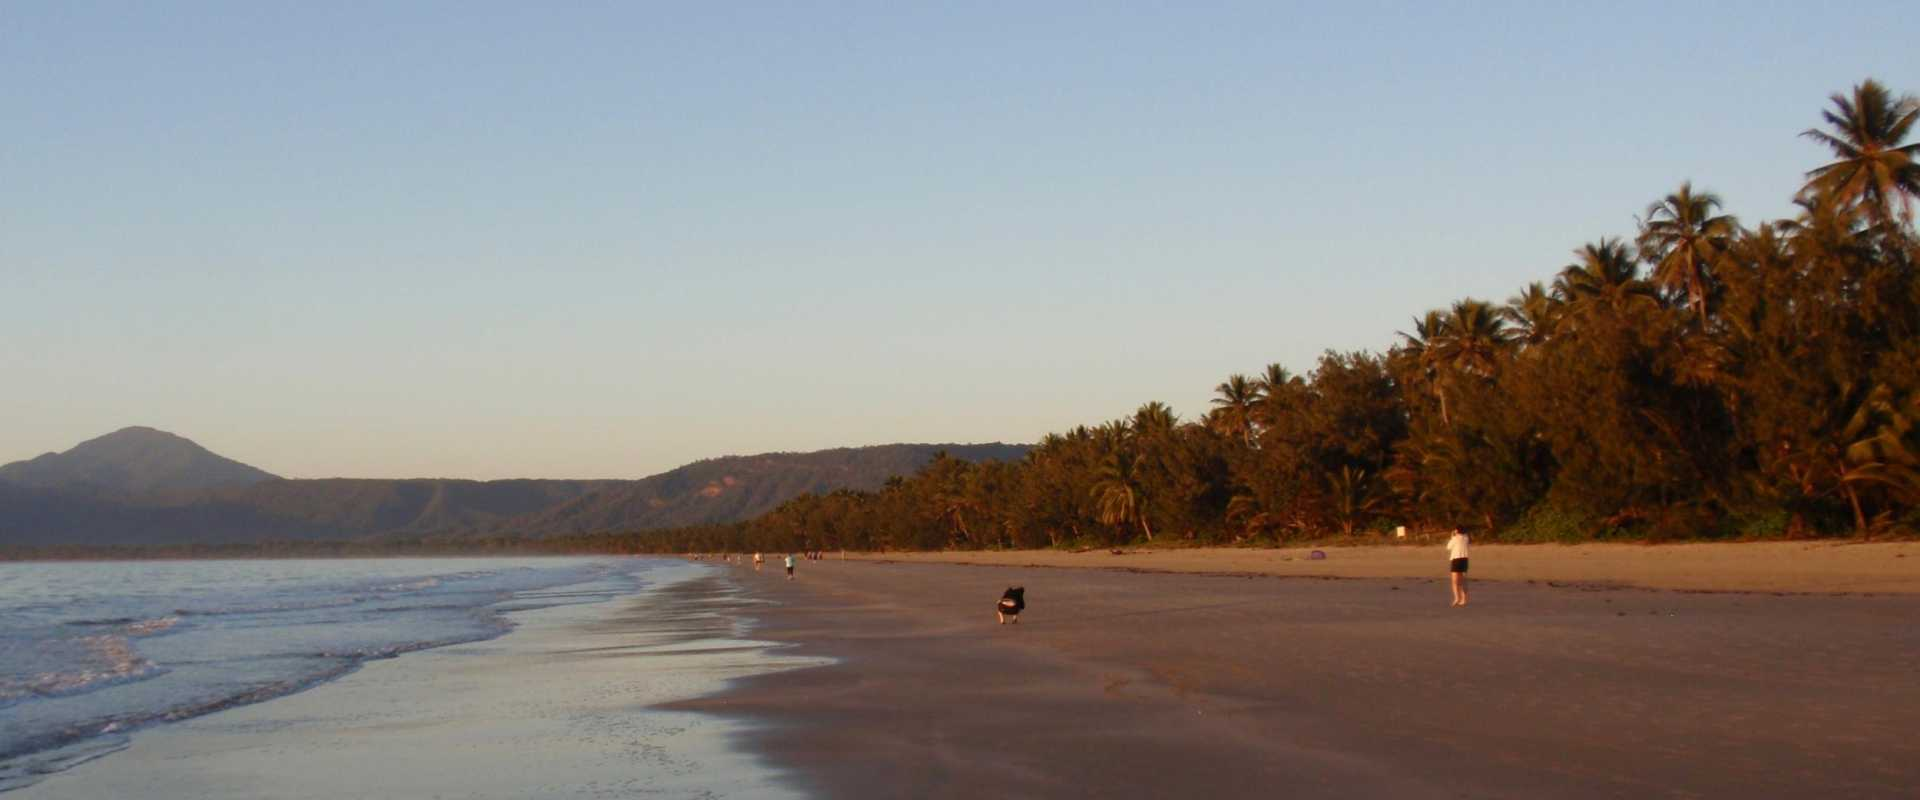 Port Douglas Beach, QLD